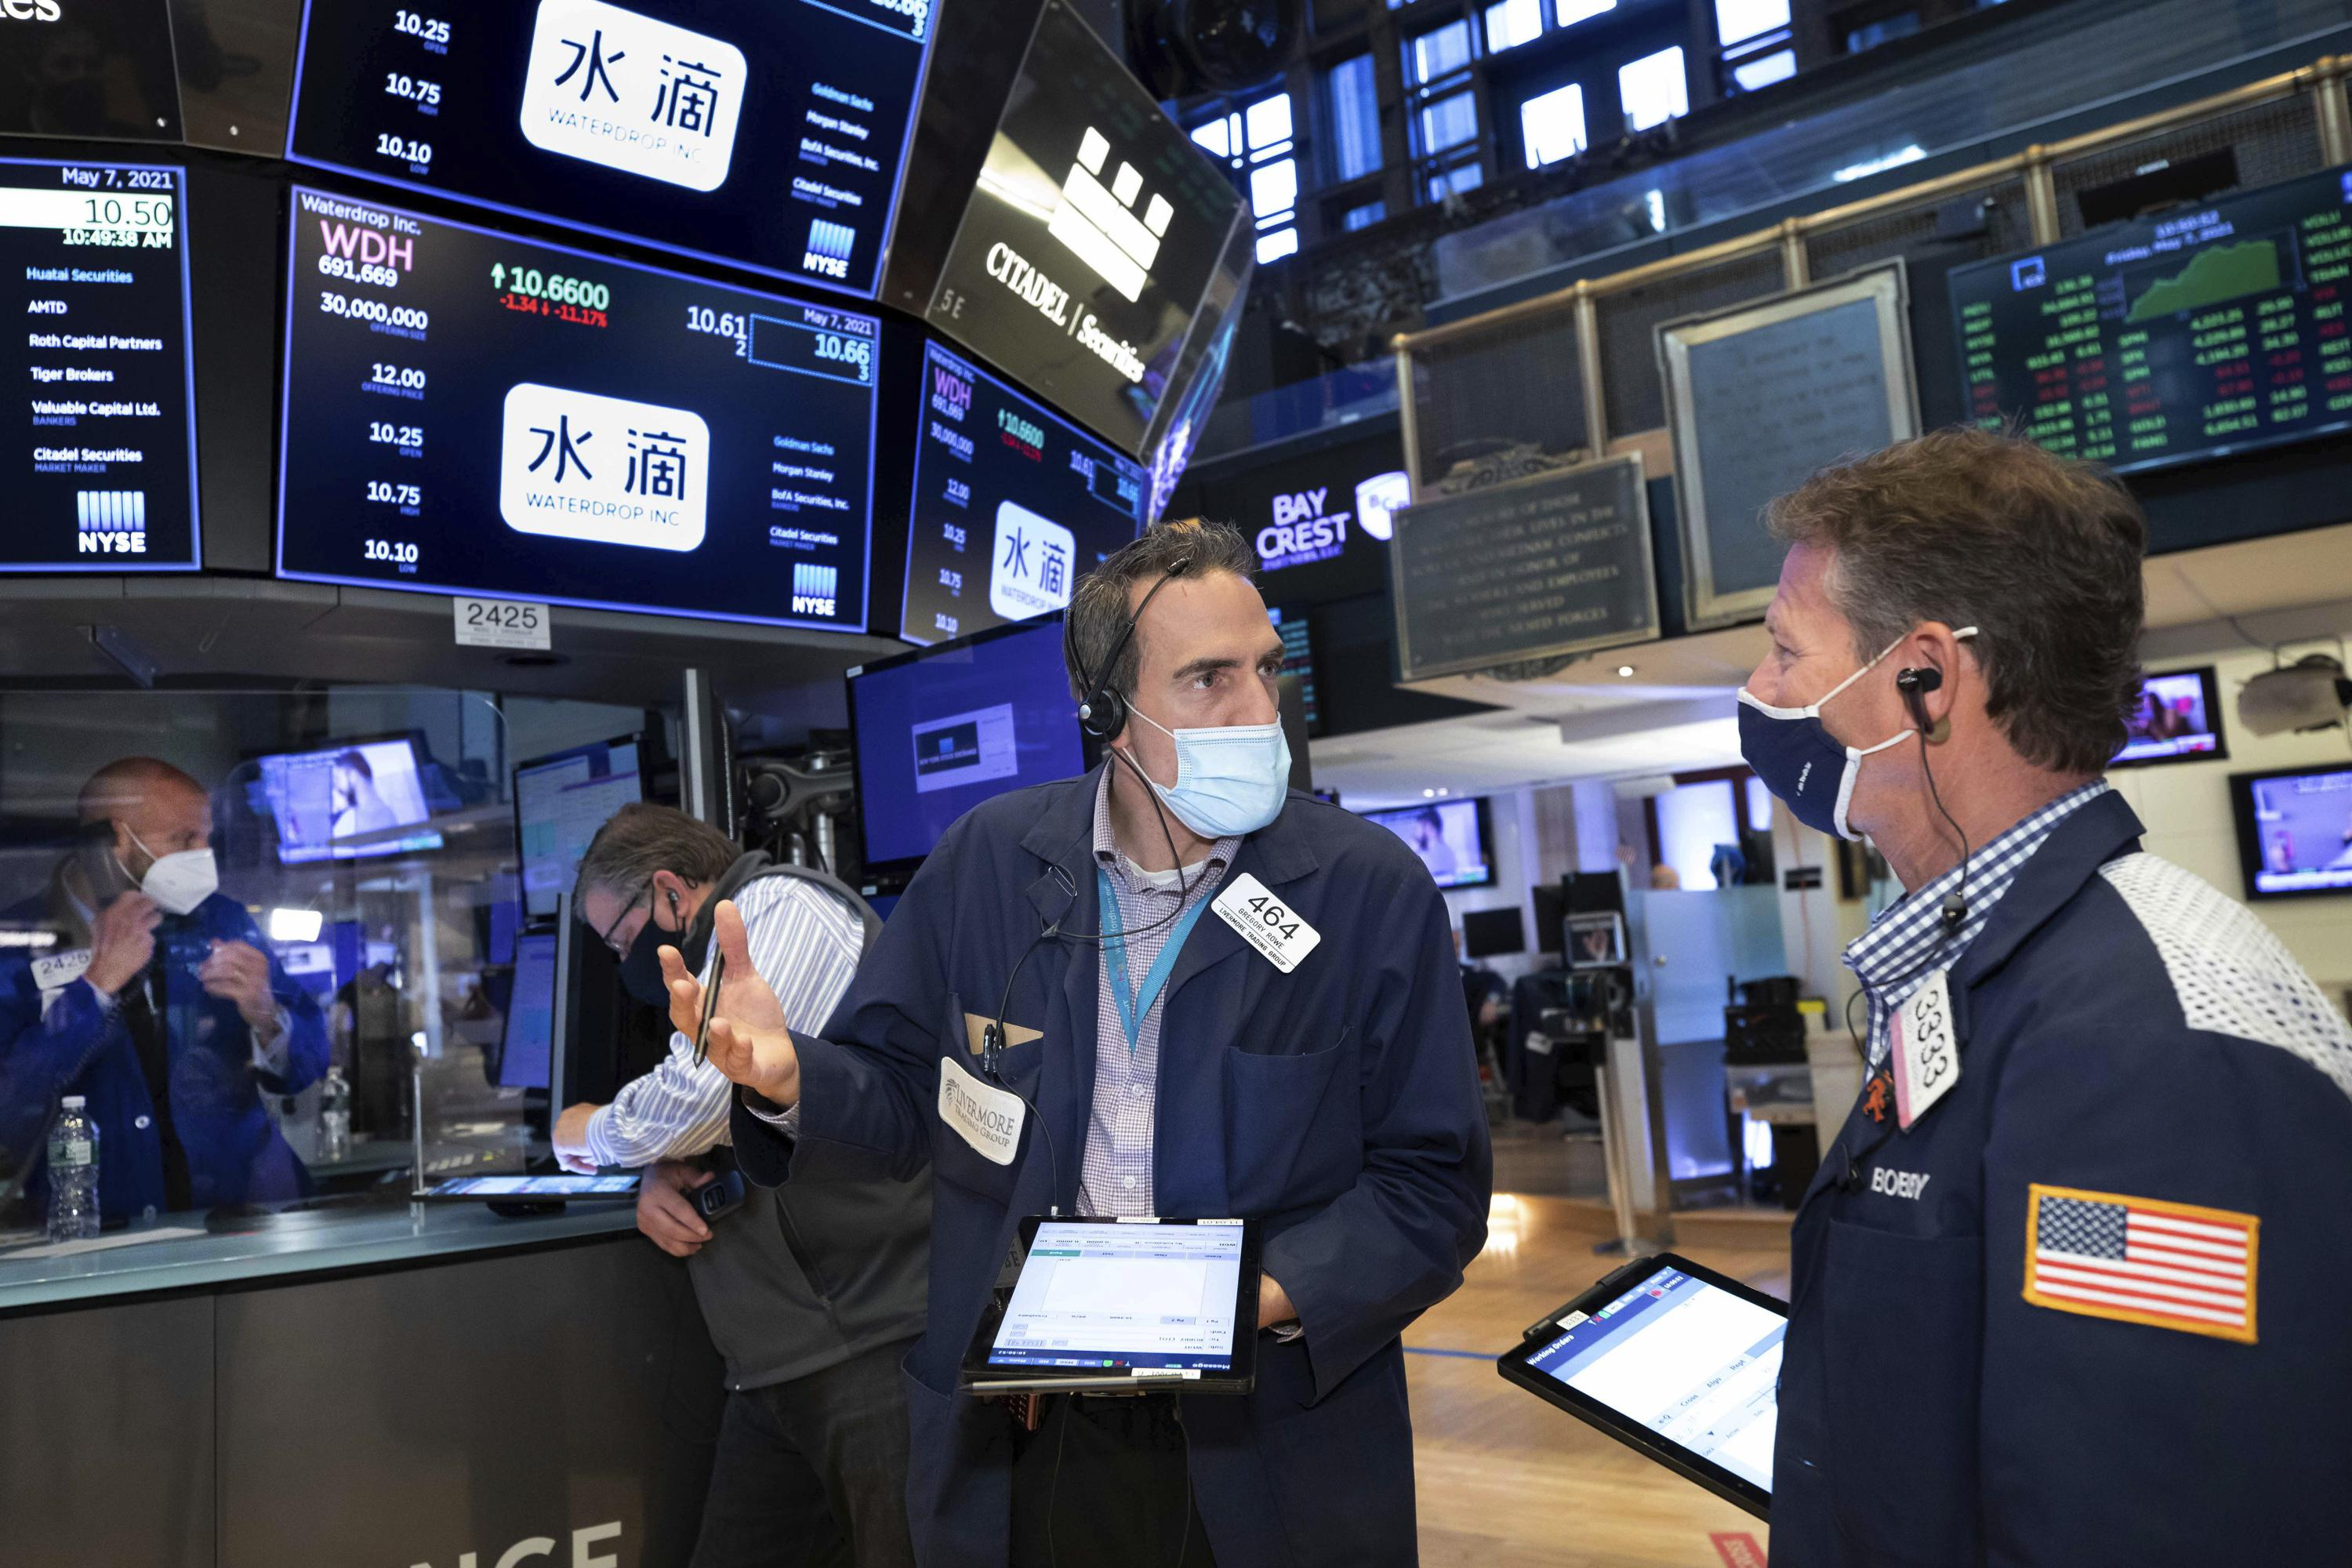 Stocks rally to records after grim jobs data undercuts rates